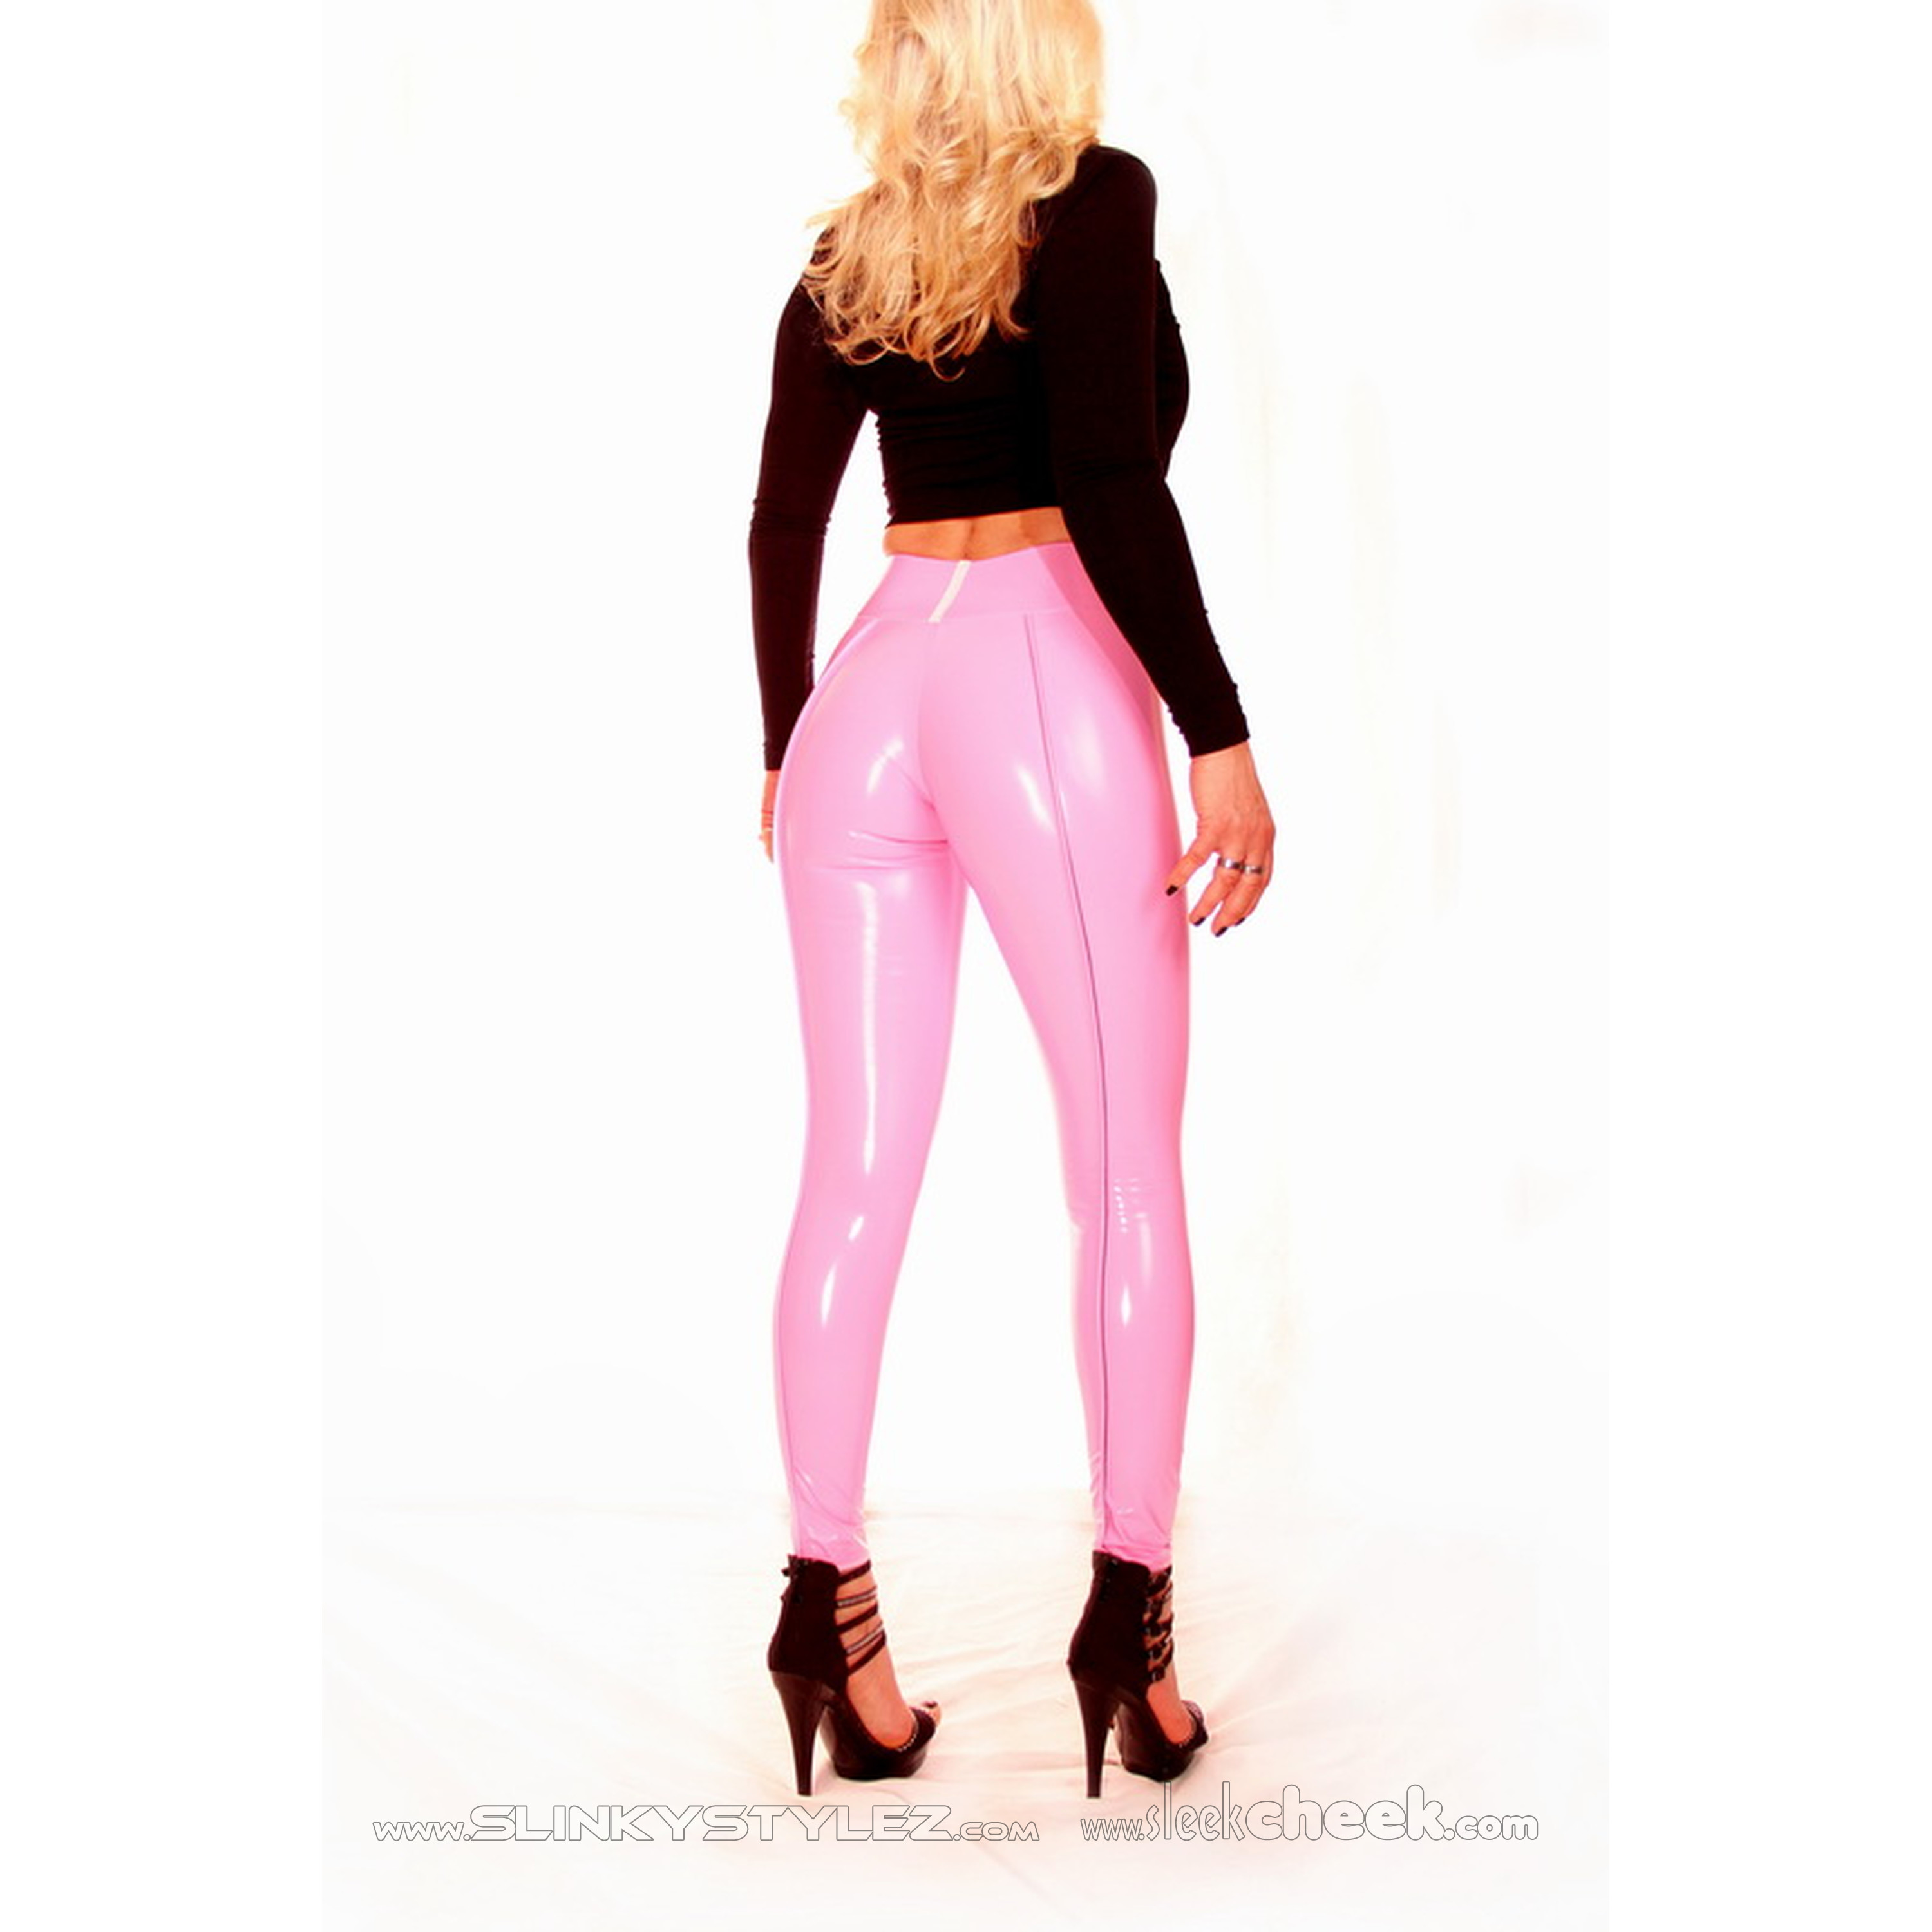 SLEEKCHEEK Booty Leggings HL5AX - CrystalLac Z360 ROSE - STANDARD (L56D)